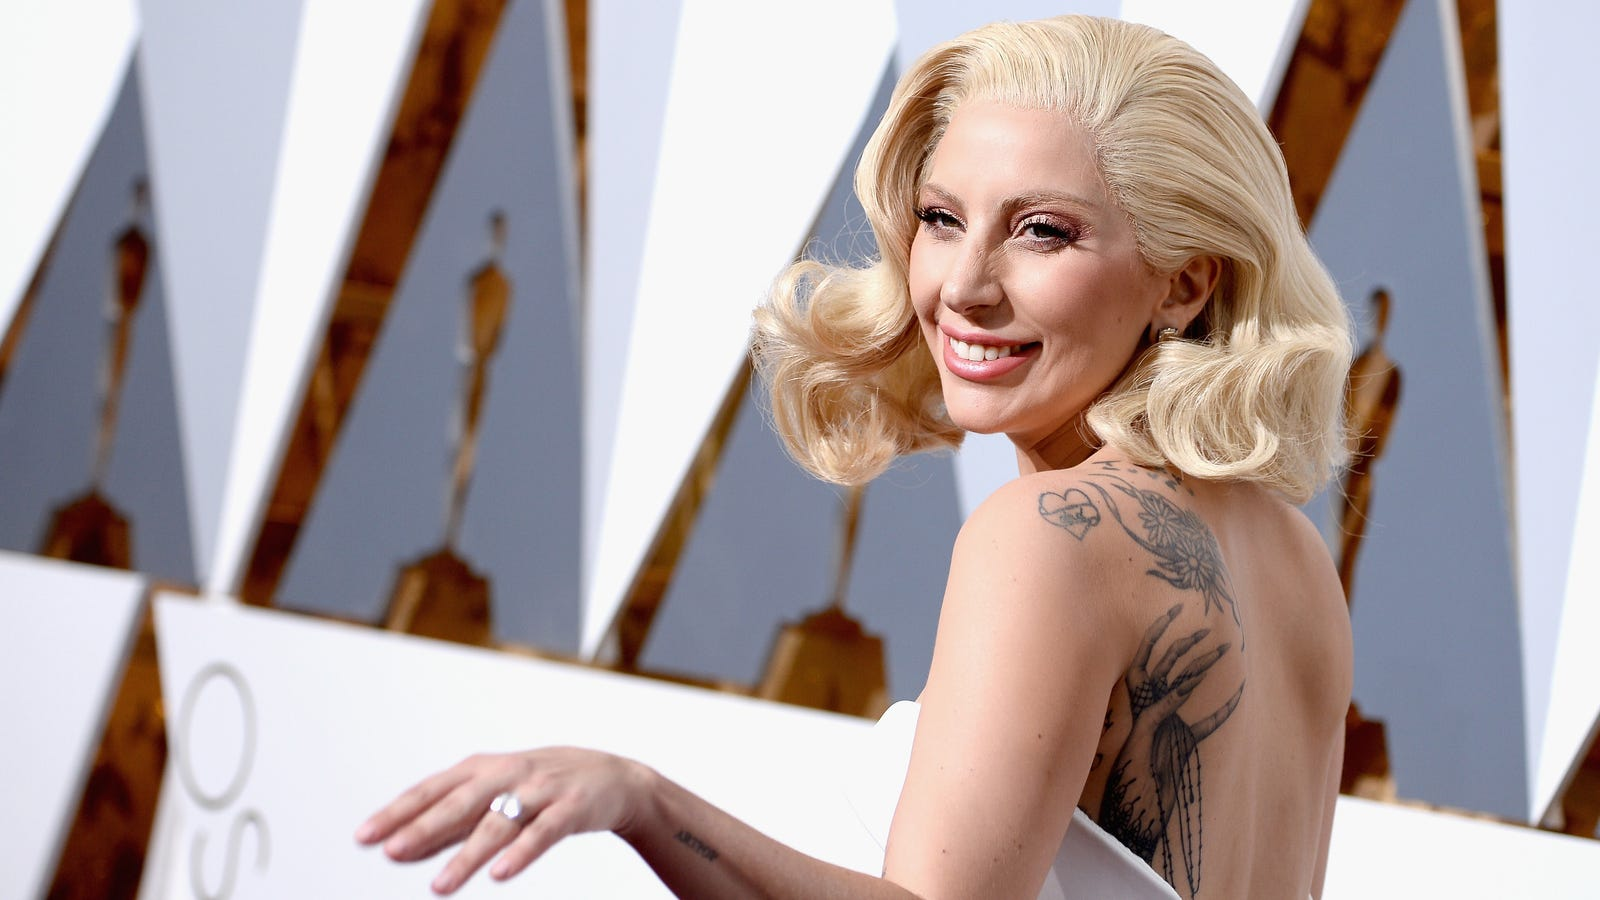 Move over 'Joanne', Lady Gaga says her next album's called... 'Adele'